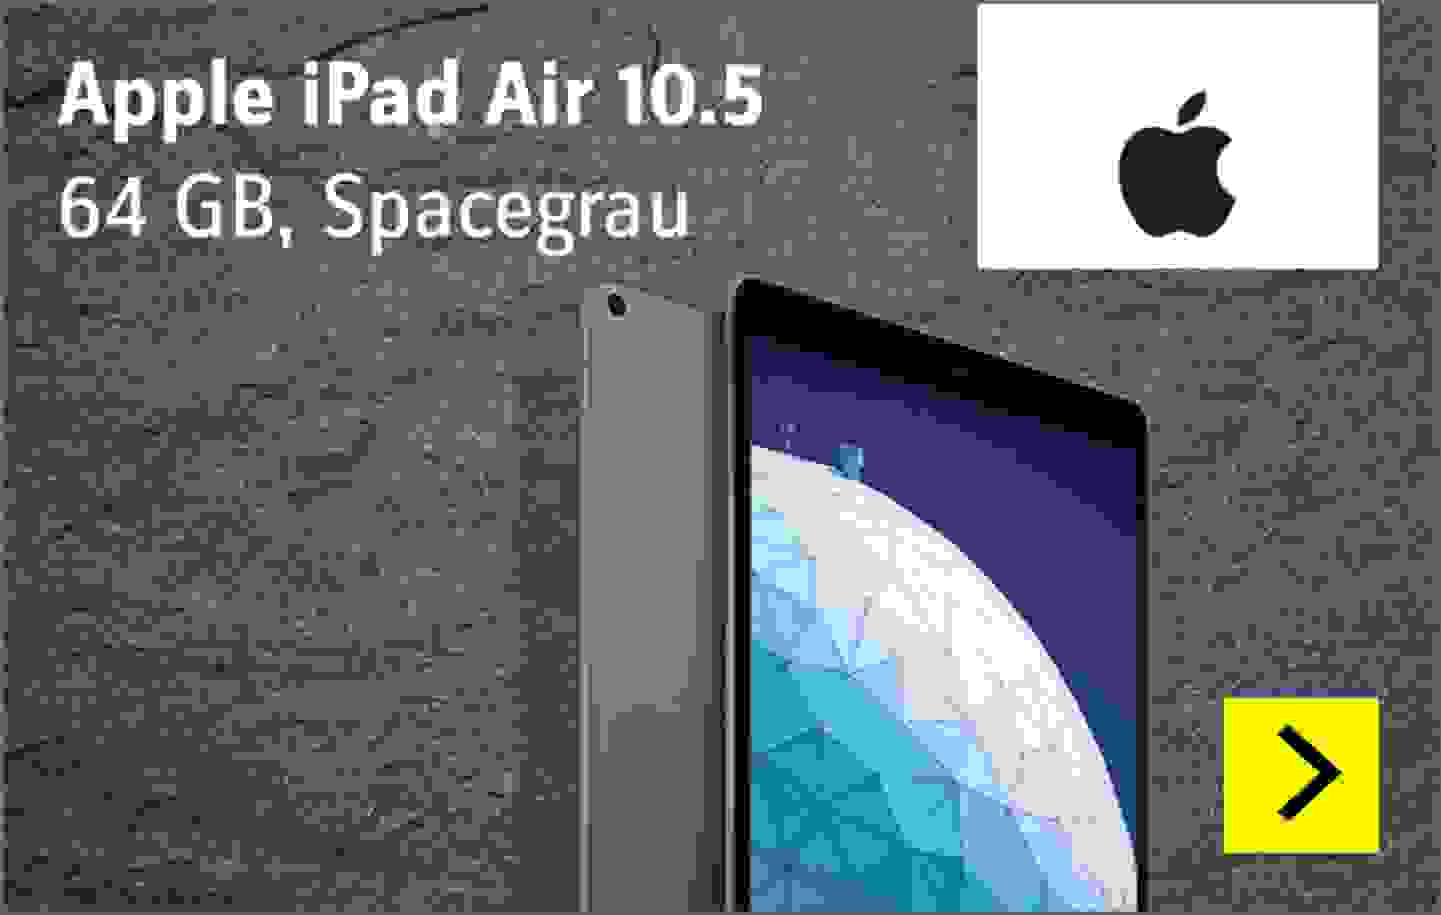 Apple iPad Air 10.5 WiFi 64 GB Spacegrau